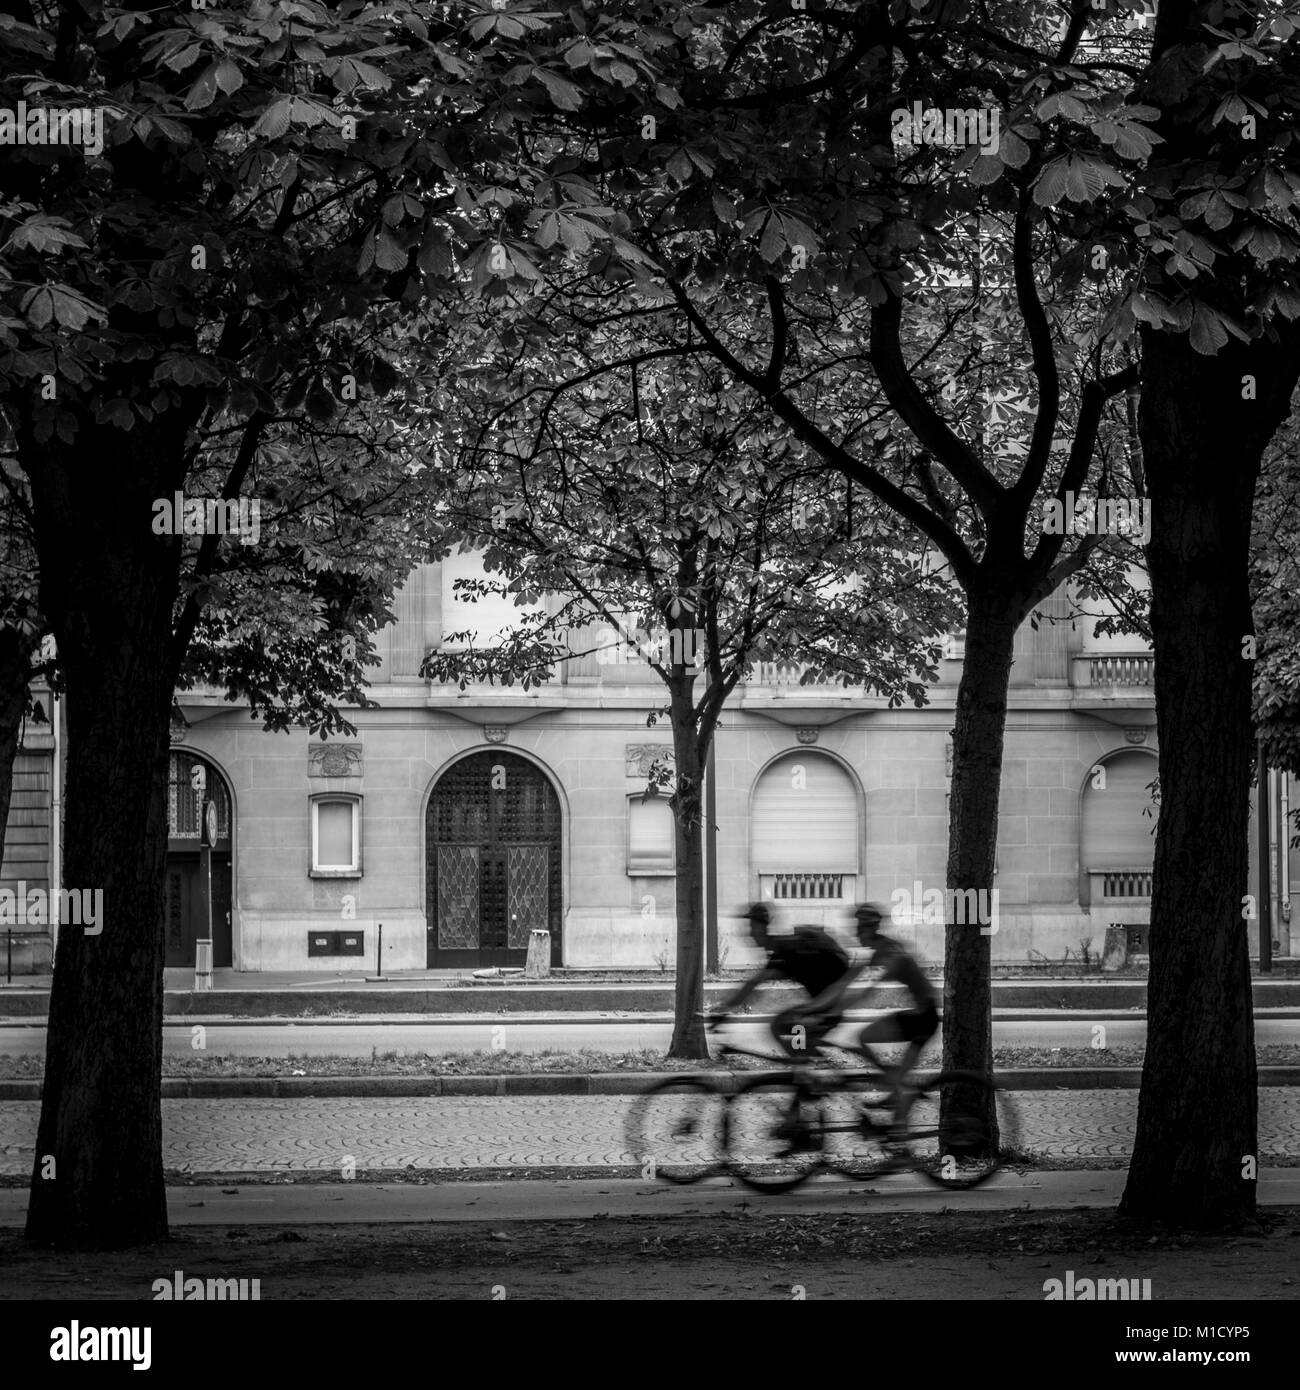 Black and white shot of unrecognizable blurred two person riding bikes on street with trees - Stock Image